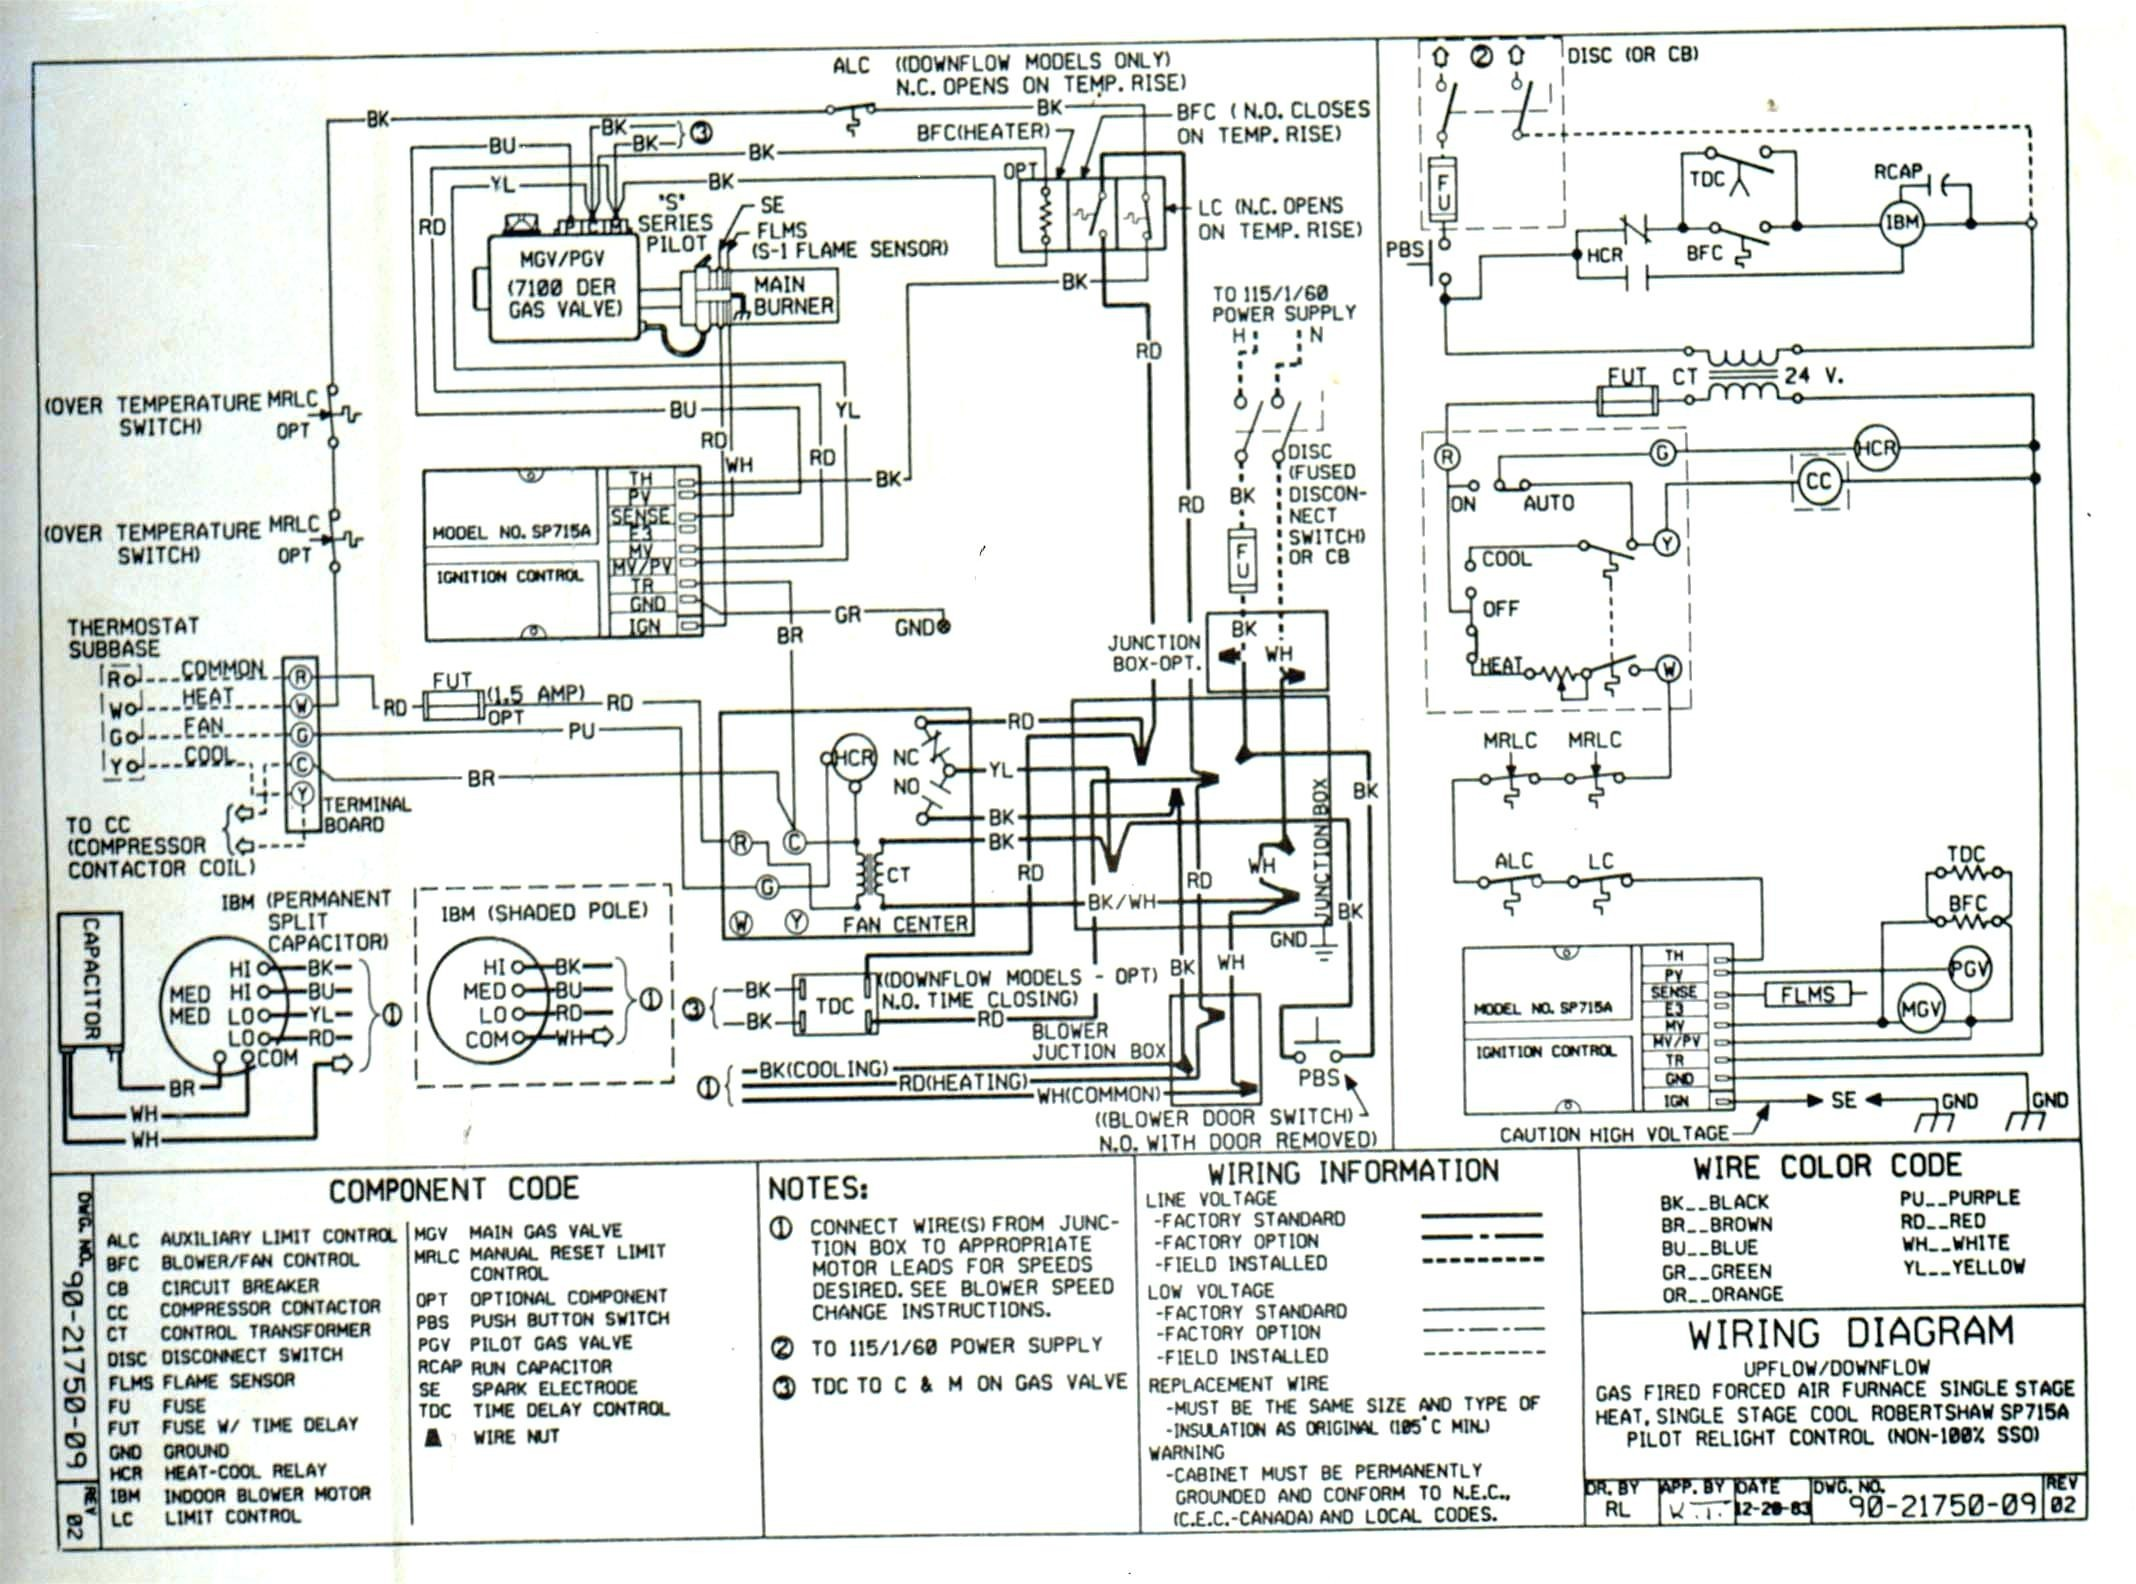 Trane Xl1200 Wiring Diagram from detoxicrecenze.com